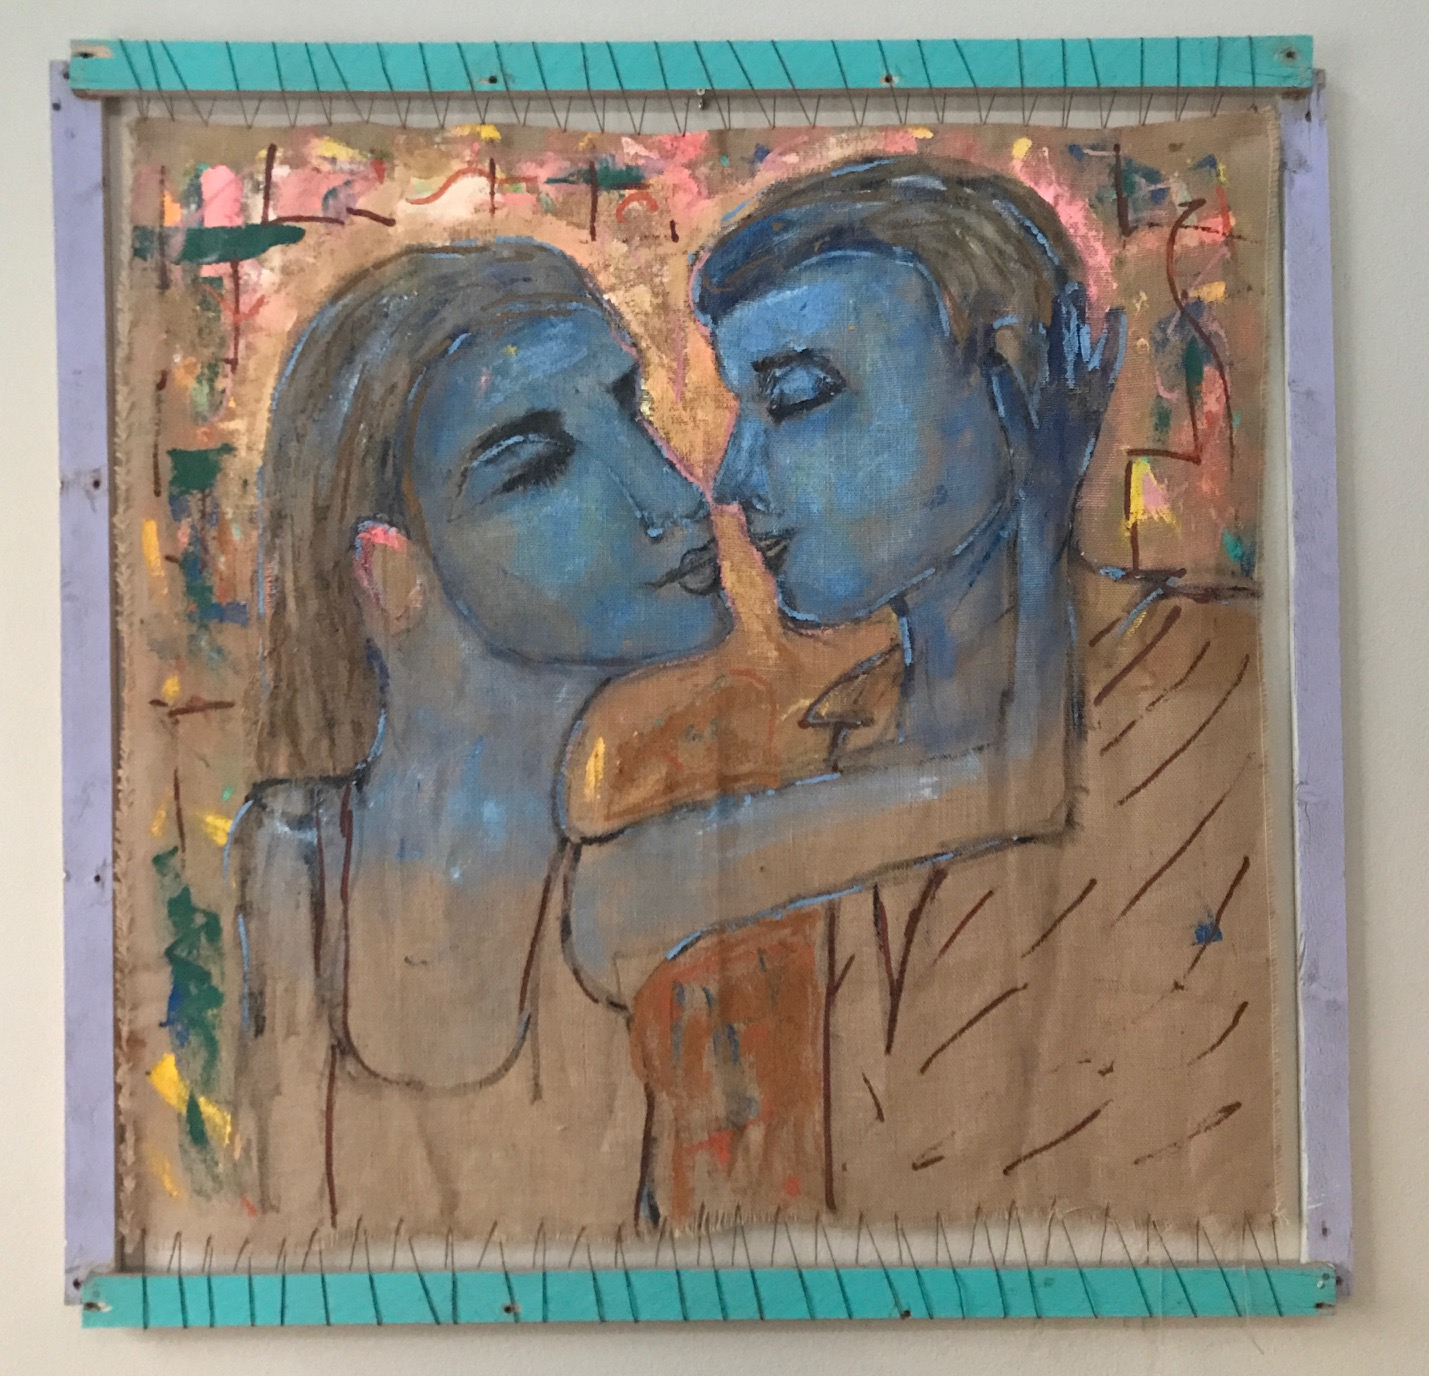 BLUE BLOOD LOVE - Acrylic on Burlap